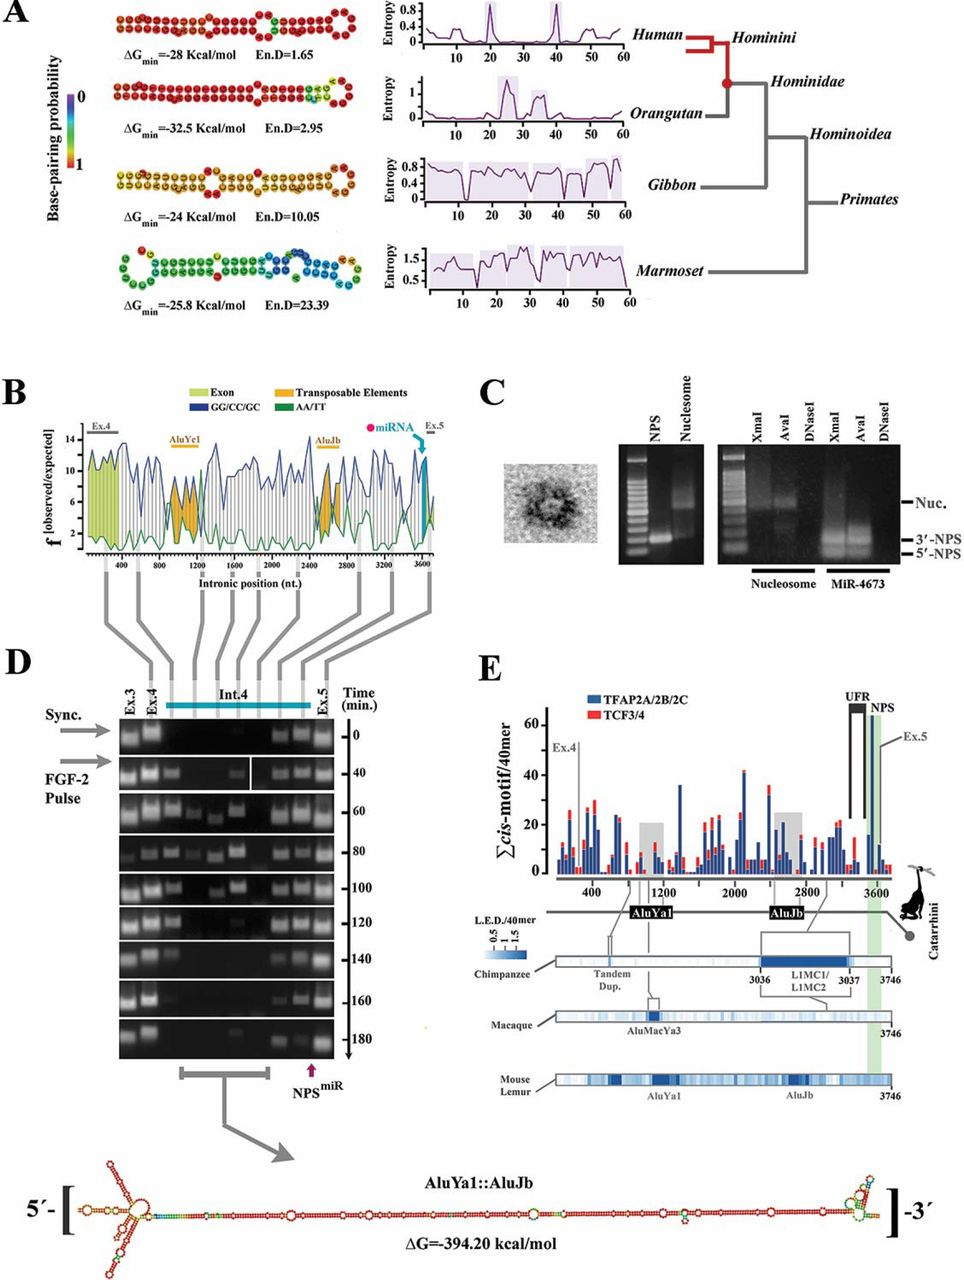 Intronic precursor of miR-4673 in notch-1 codes an active enhancer. a, Structural analysis shows improved thermodynamic stability of the RNA hairpin in primate lineage culminating in the structural maturation of miR-4673 hairpin in Hominins . b, Nucleosome-favouring dinucleotide usage map of human notch-1 intron 4. c, Transmission electron micrograph of a nucleosome formed by NPS miR (left). Gel retardation (middle) and restriction enzyme digestion assays (right) provided further confirmation for nucleosome formation by NPS miR . d , The temporal profile of enhancer-RNAs (eRNAs) that originates from Notch-1 intron-4 (full blots are provided in supplementary file 10). Vertical lines show the location of eRNAs with reference to the dinucleotide usage map. In order to access the eRNA profile, cells were synchronised at G0 and released into G1 by application of a single pulse of <t>FGF-2.</t> Note the temporal stability of 3′-eRNA from a region that corresponds to NPS miR (see supplementary file 11). This region is positioned at 3′-terminus of a stable RNA palindrome formed by two Alu elements. e, Histogram shows cumulative distribution of TCF3/4 and TFAP2A/B/C cis -motifs in the intron 4 of human notch-1. At the bottom, Levenshtein distance (L.E.D) as a measure of intronic change is aligned to the enhancer map. Sequences that belong to AluJb and AluYa1 insertions in all Simians are in grey. Species-specific transpositional events are marked in LED heat maps.